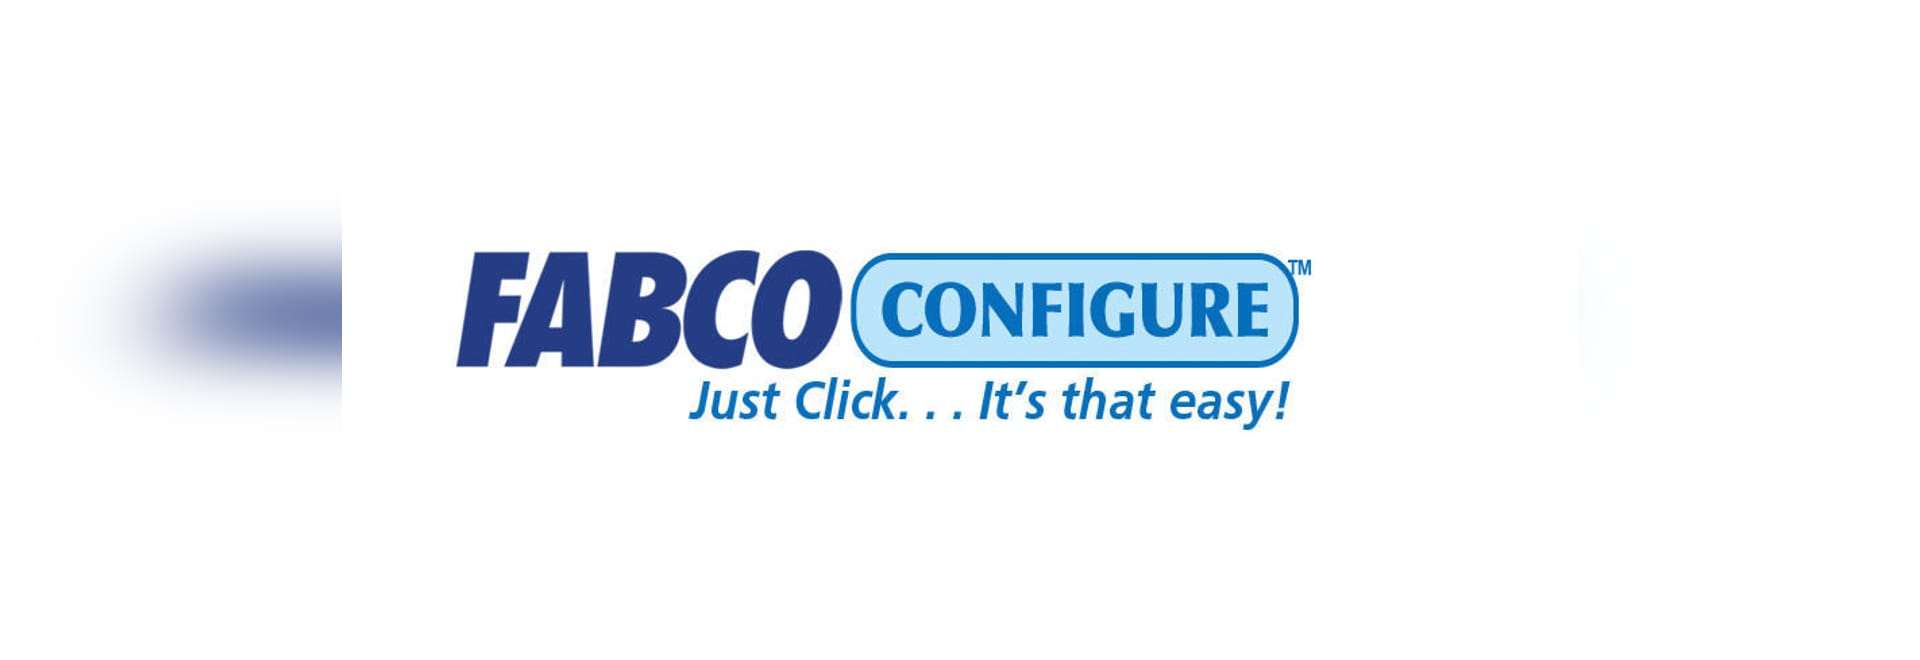 Fabco-Air, Inc.  Launches Enhancements to Most Comprehensive On-Line Product Configuration Program in the Industry